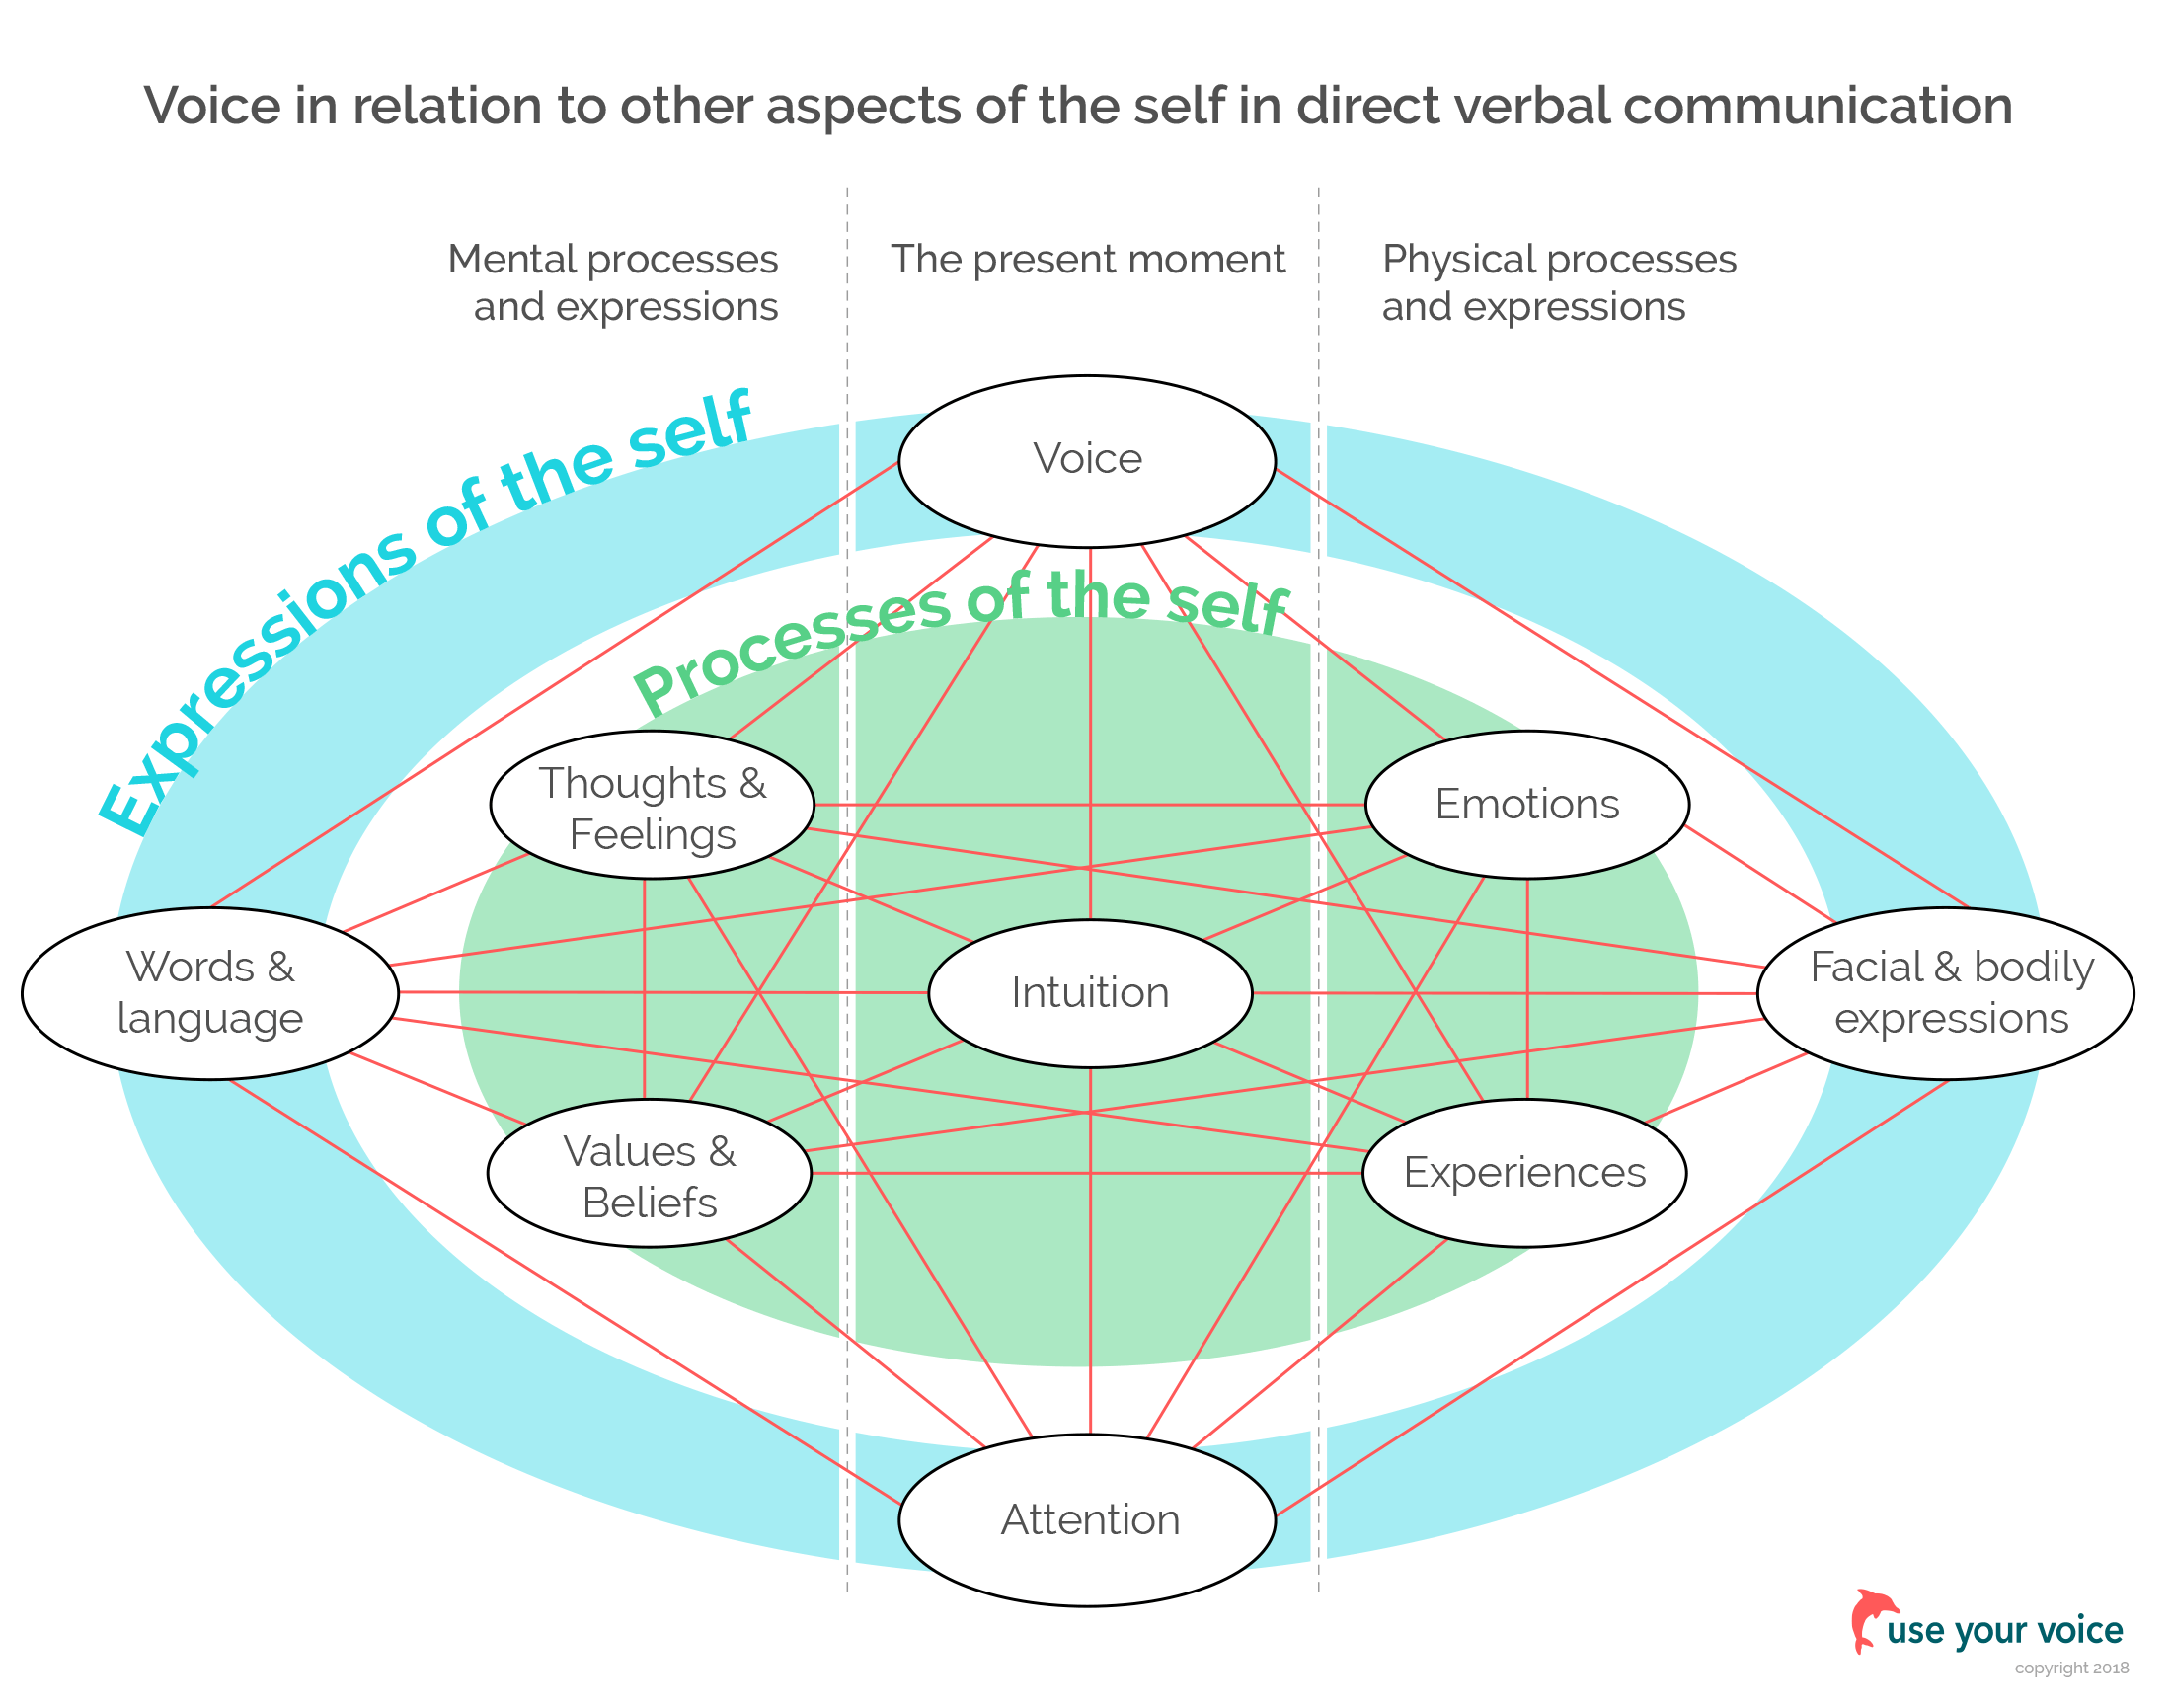 voice in relations to other aspects of the self in direct verbal communication